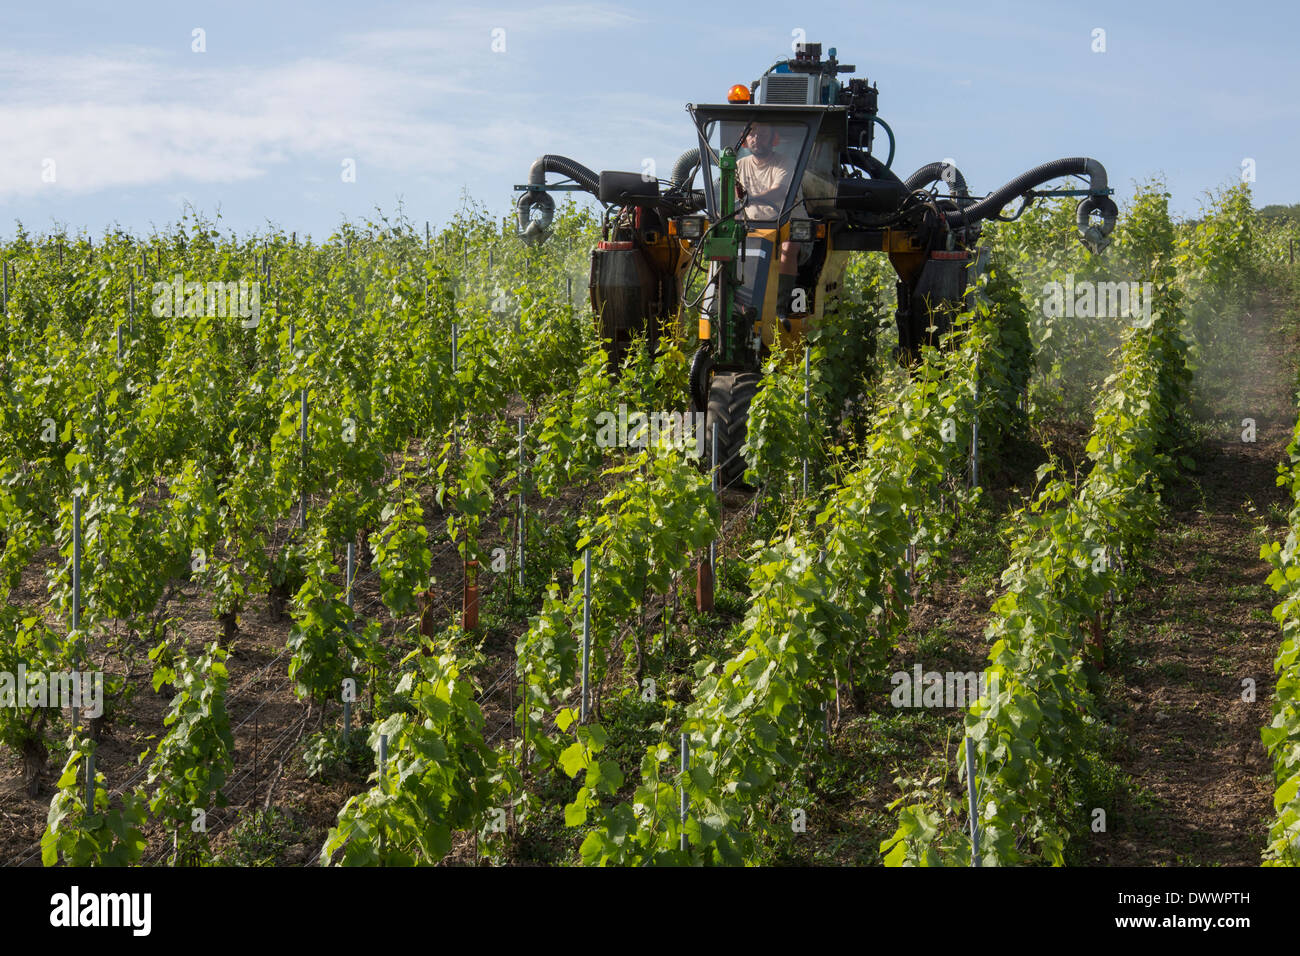 Mechanized spraying of a vineyard with insecticide. Near Reims in the Champagne region of northeast France. - Stock Image